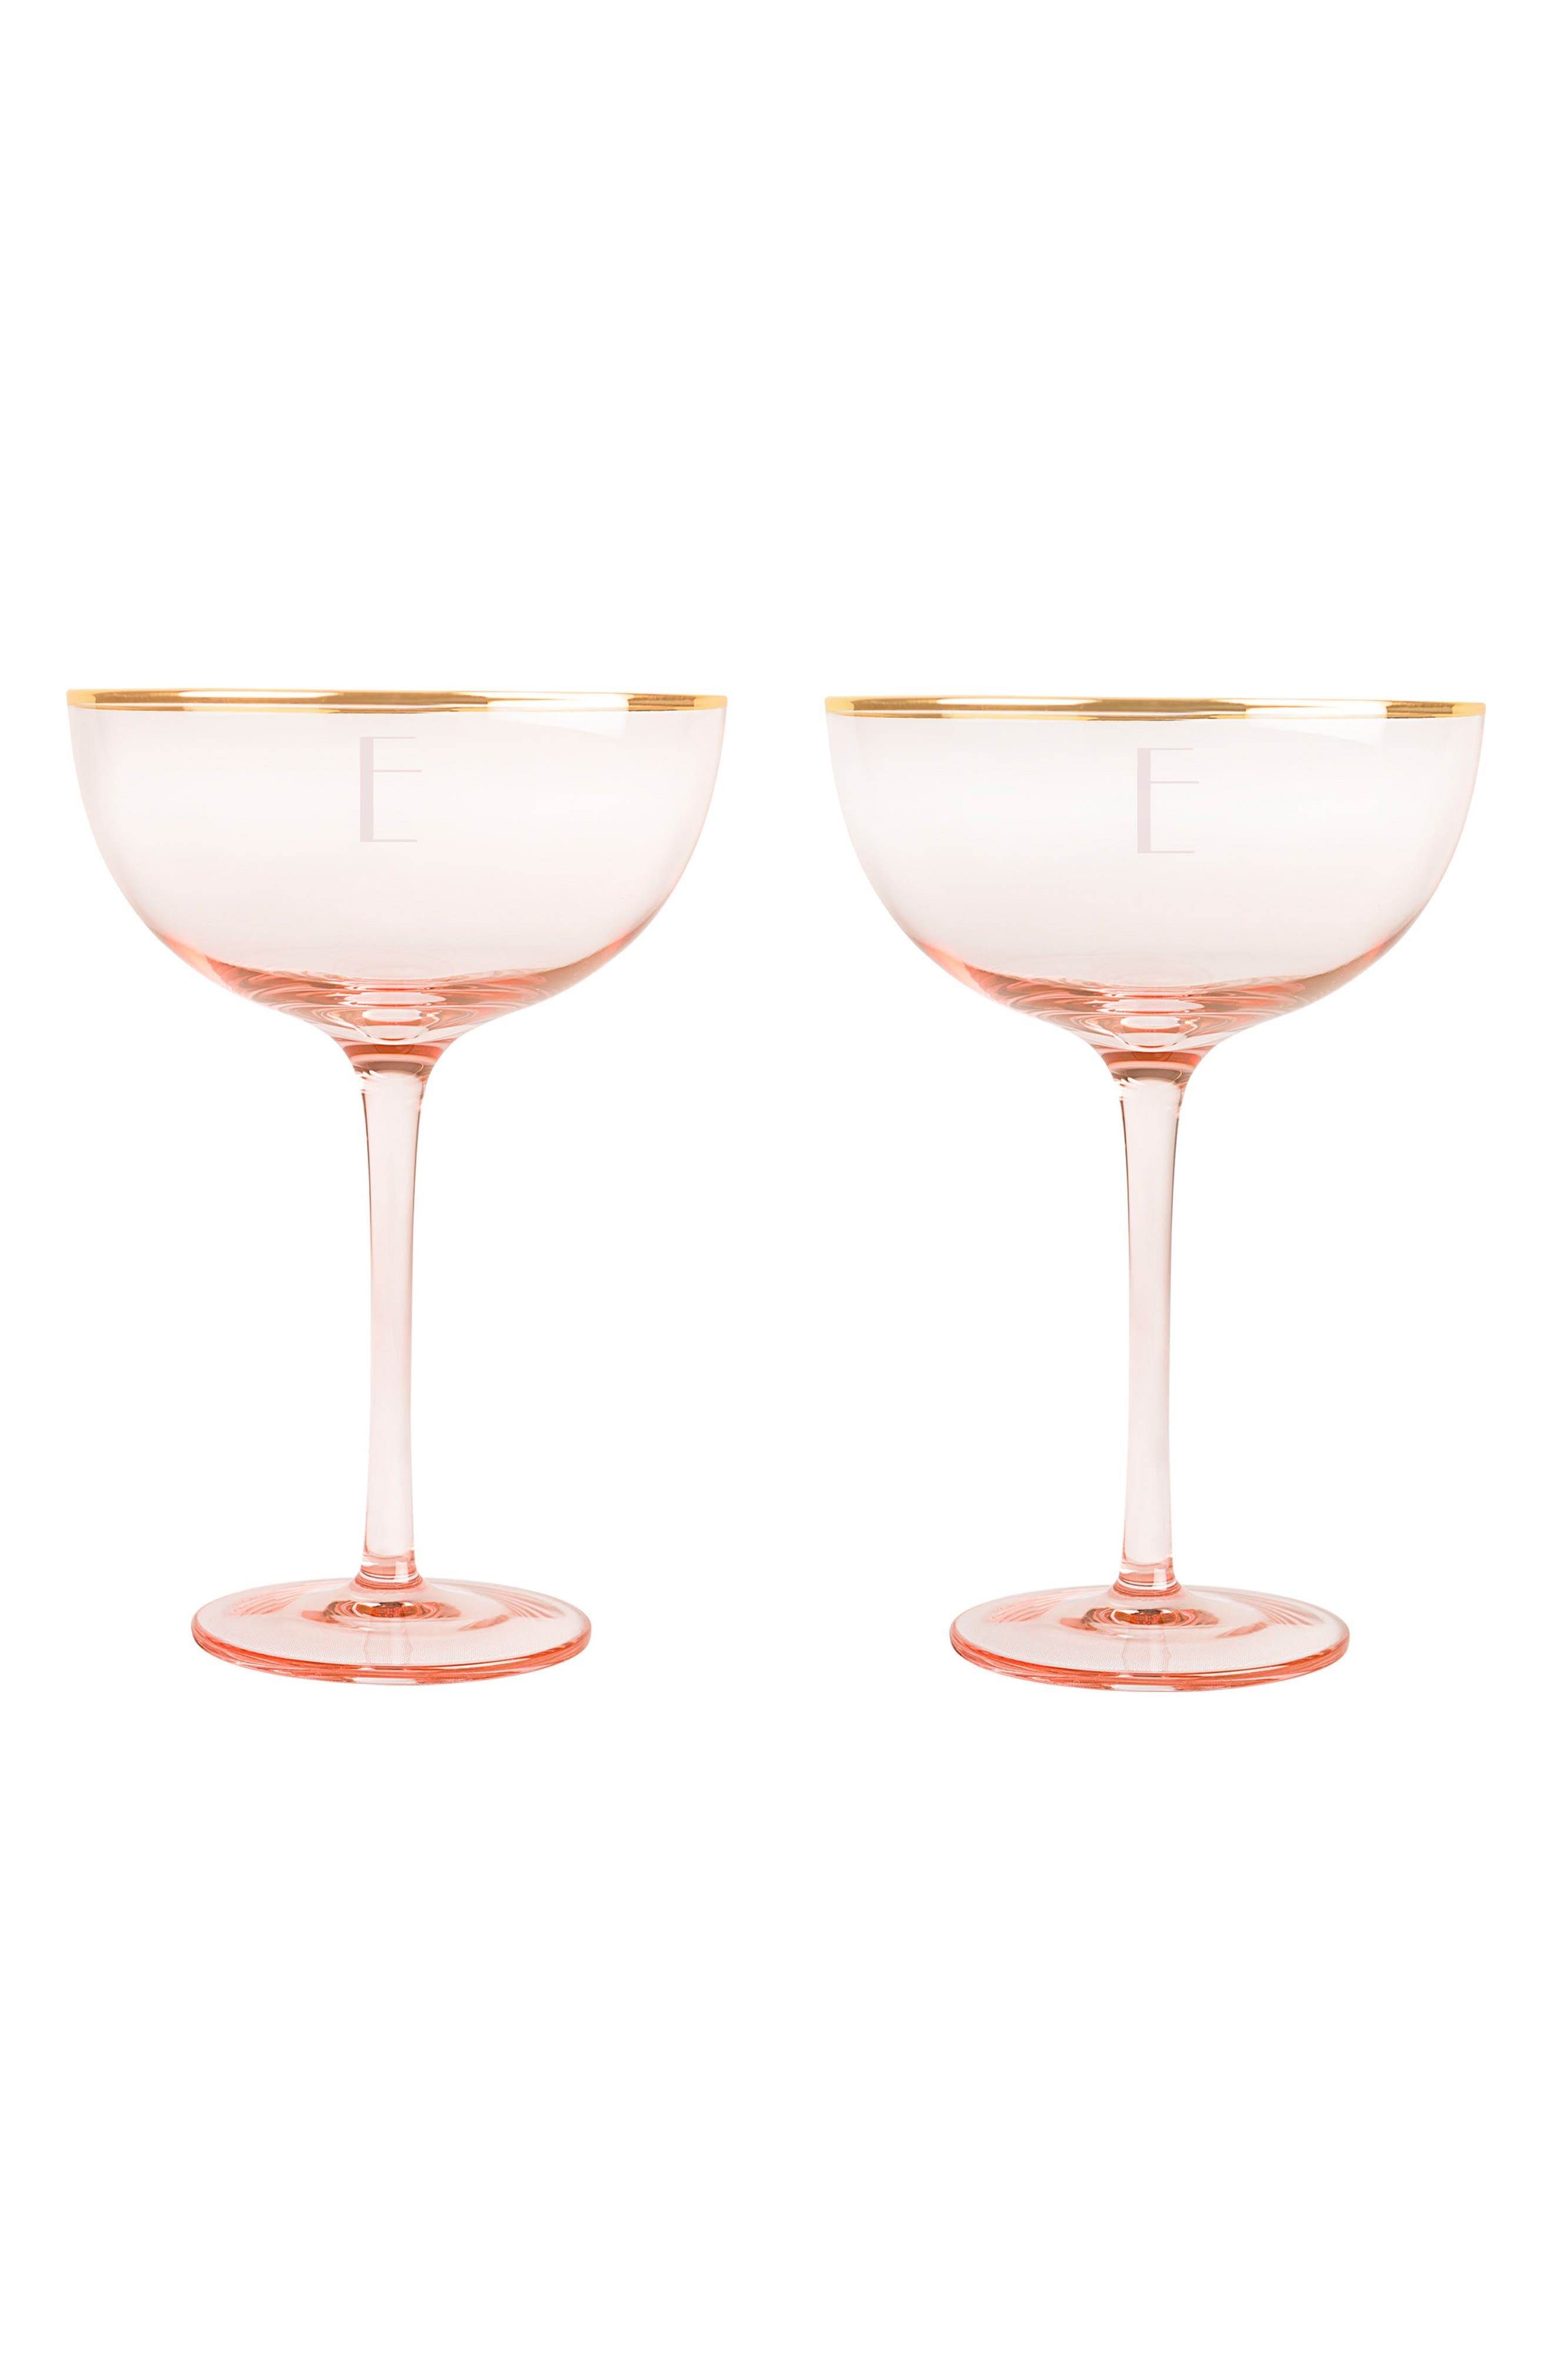 Monogram Champagne Coupes & Cake Serving Set,                             Alternate thumbnail 6, color,